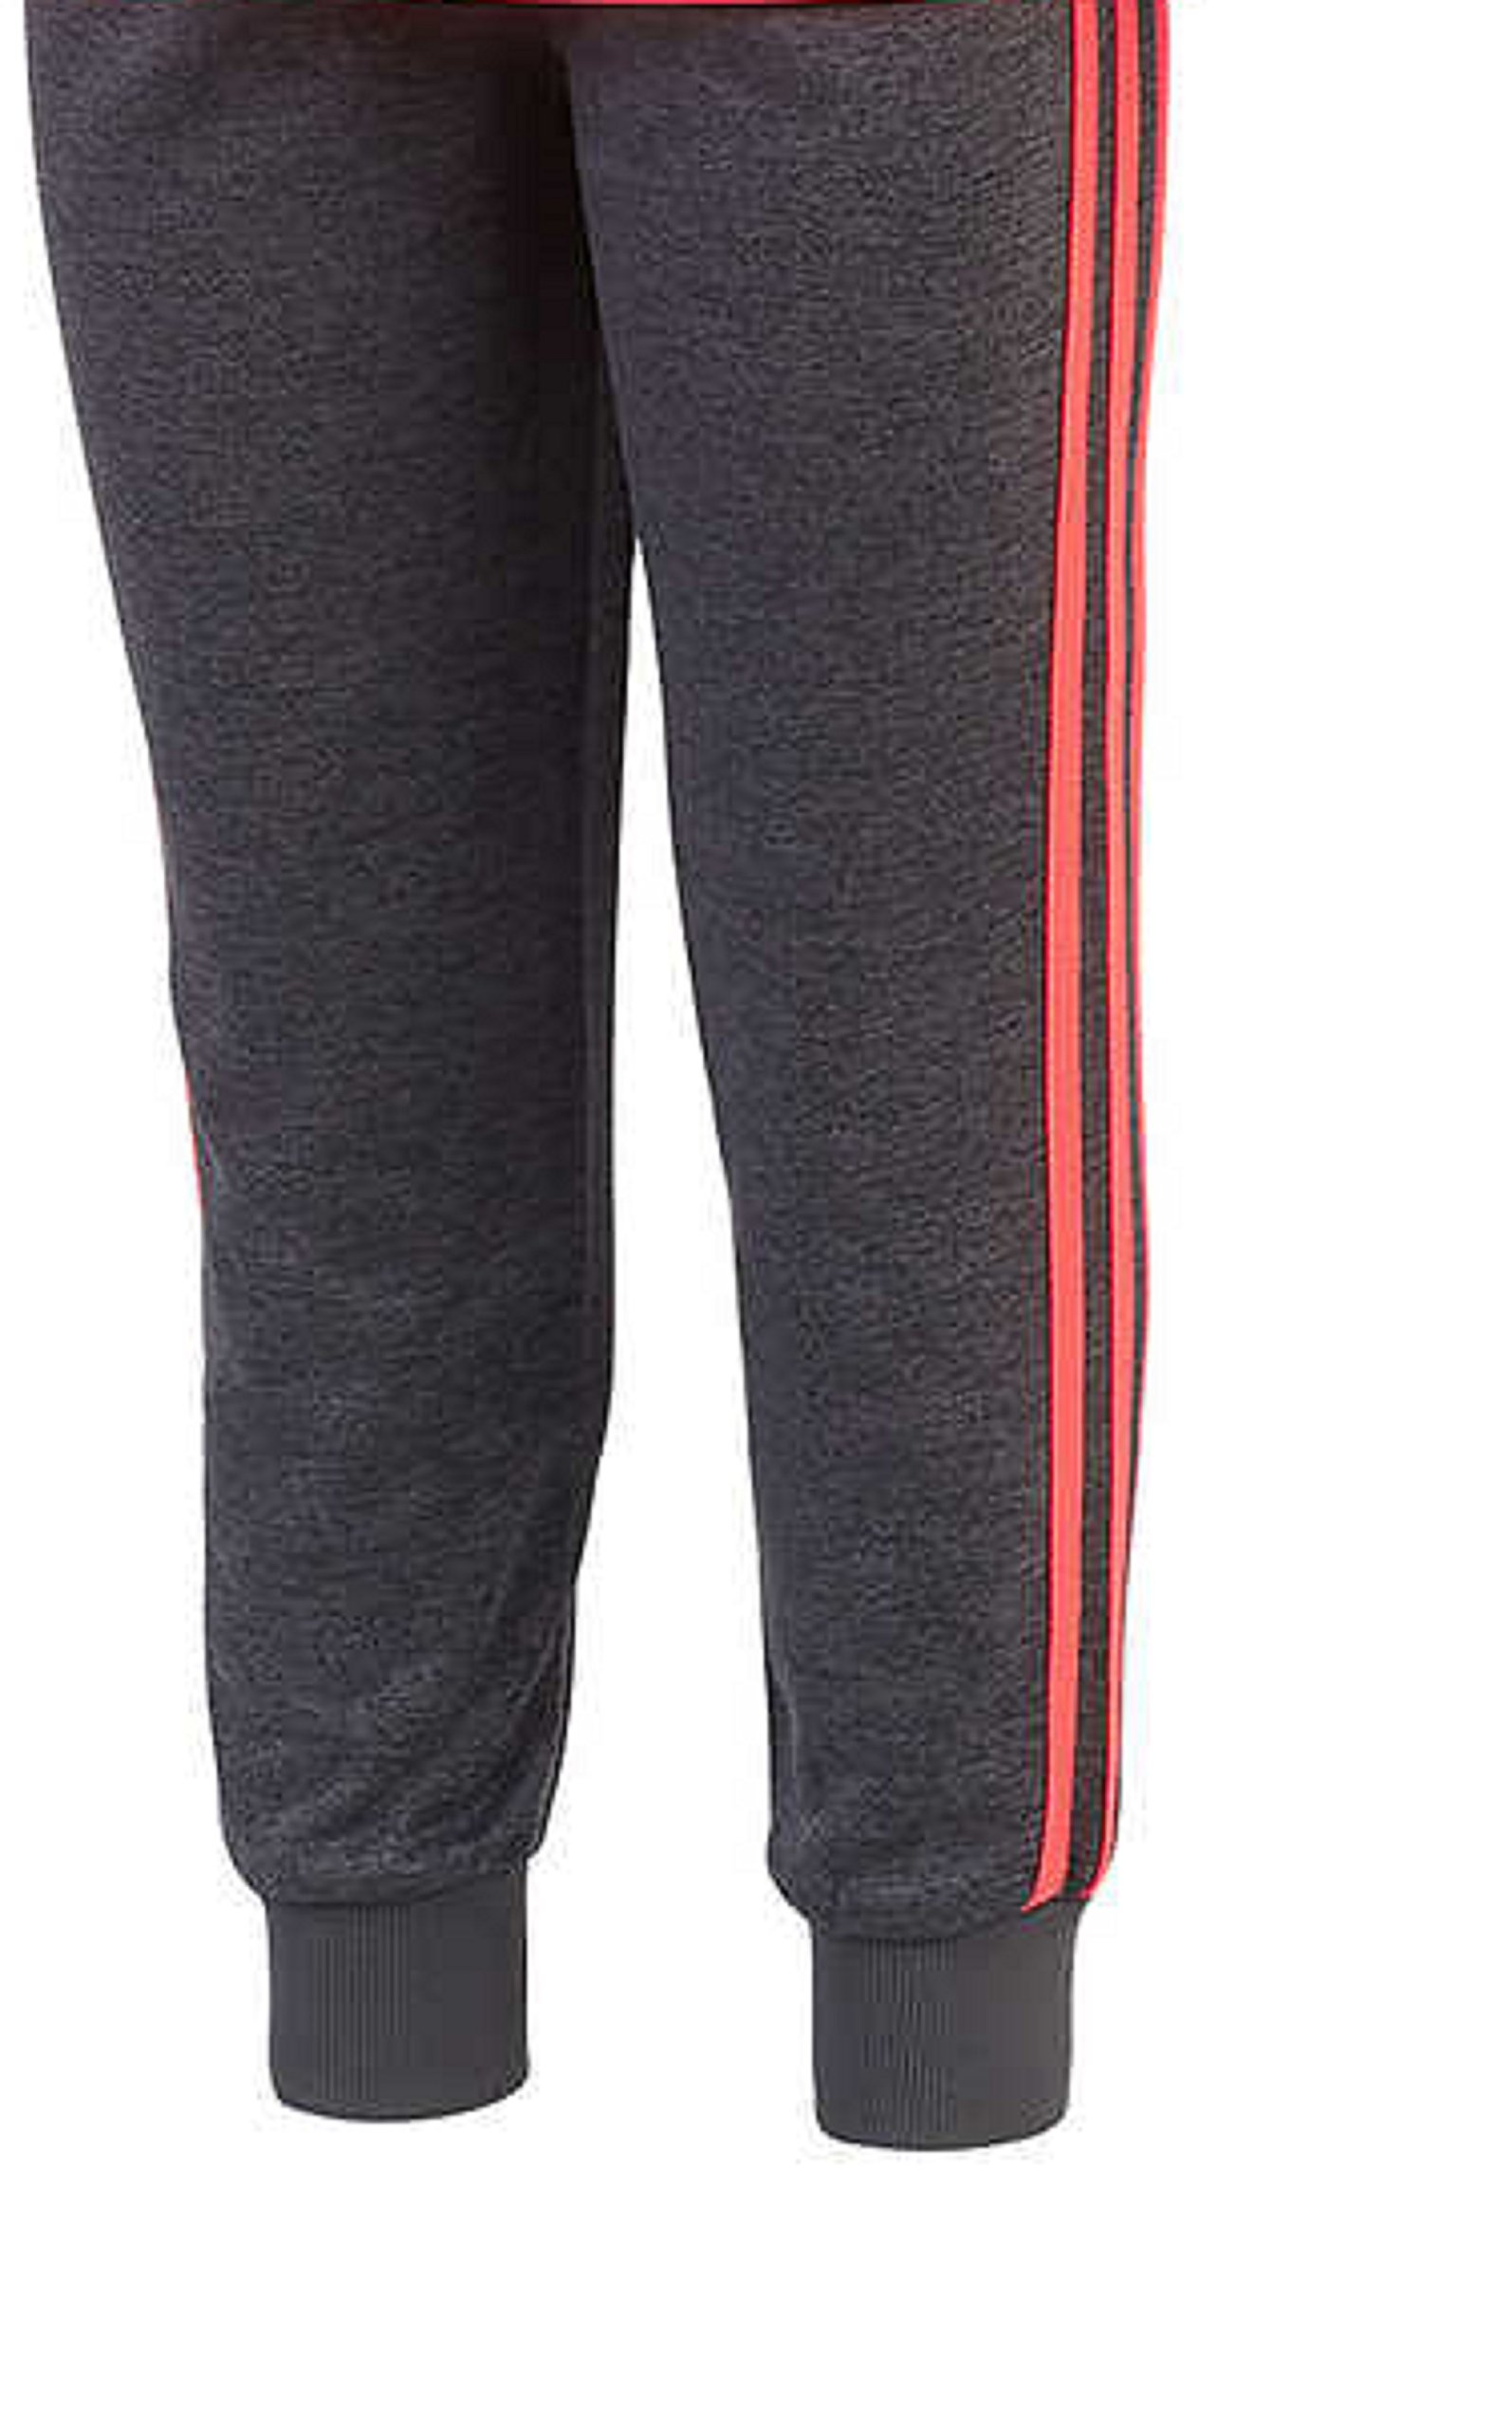 adidas Girls' Tricot Hoodie Jacket and Pant Set (4T, Heather Gray/Neon Pink) by adidas (Image #5)